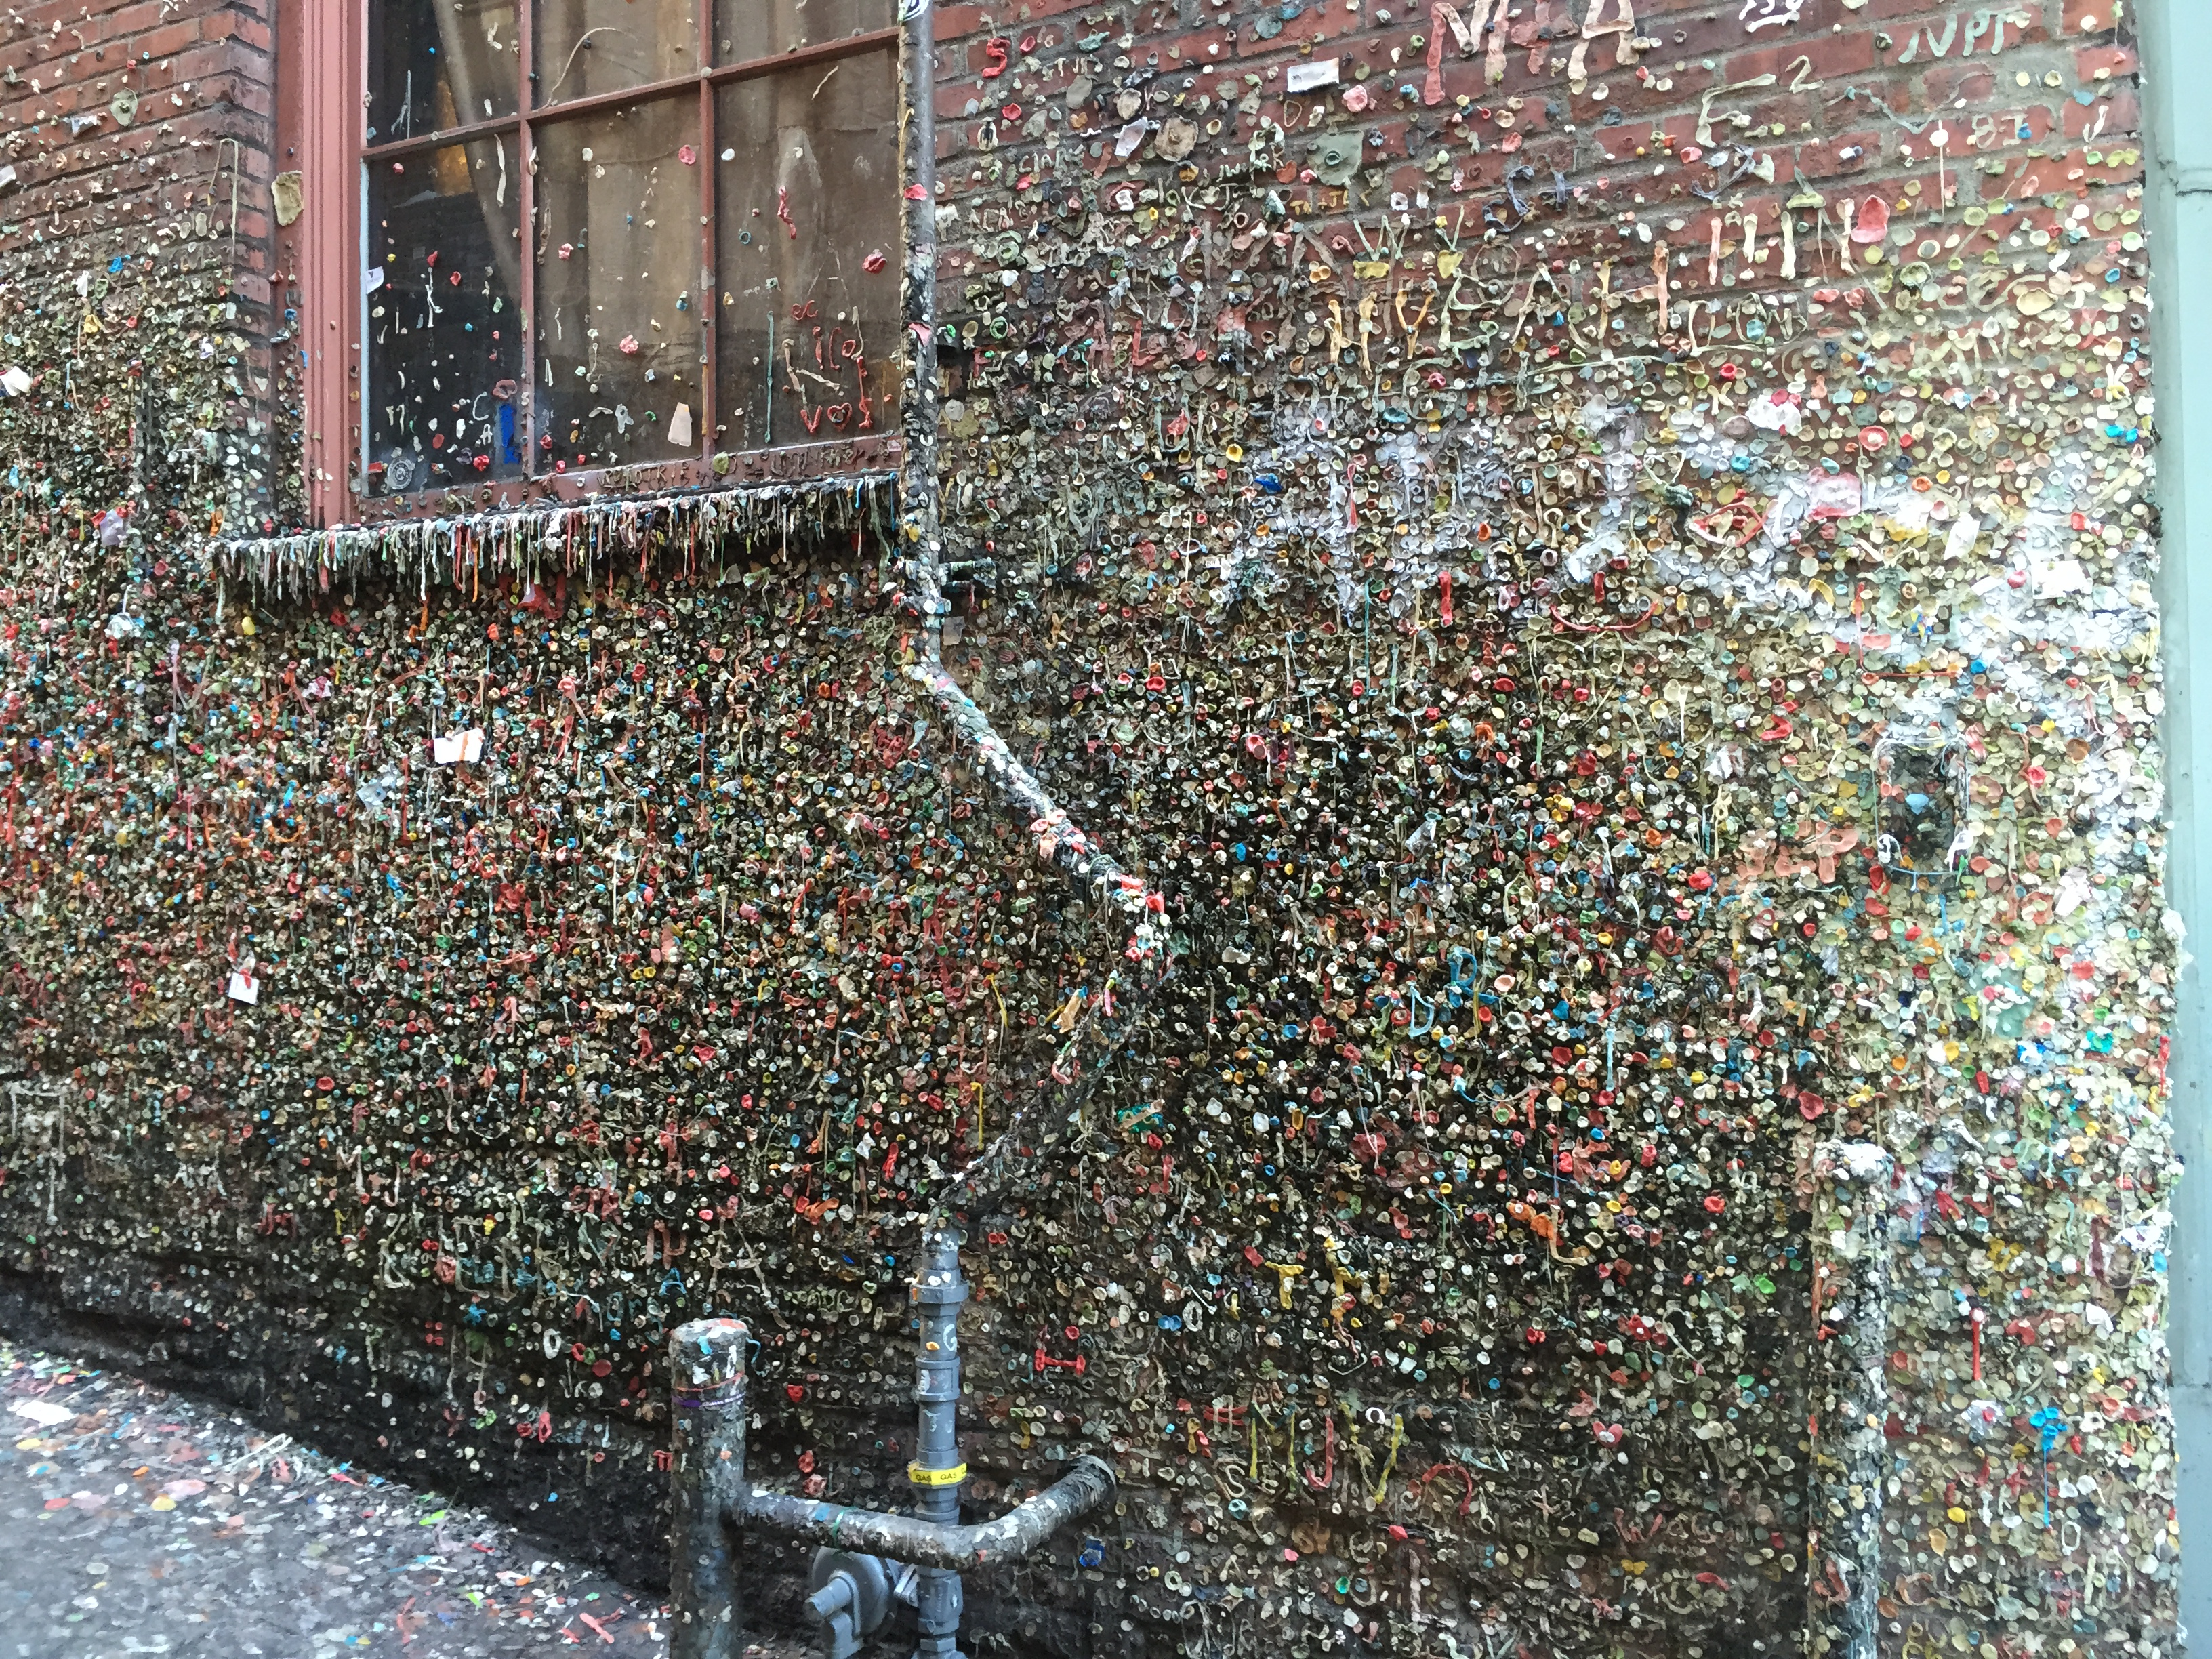 The famous gum wall